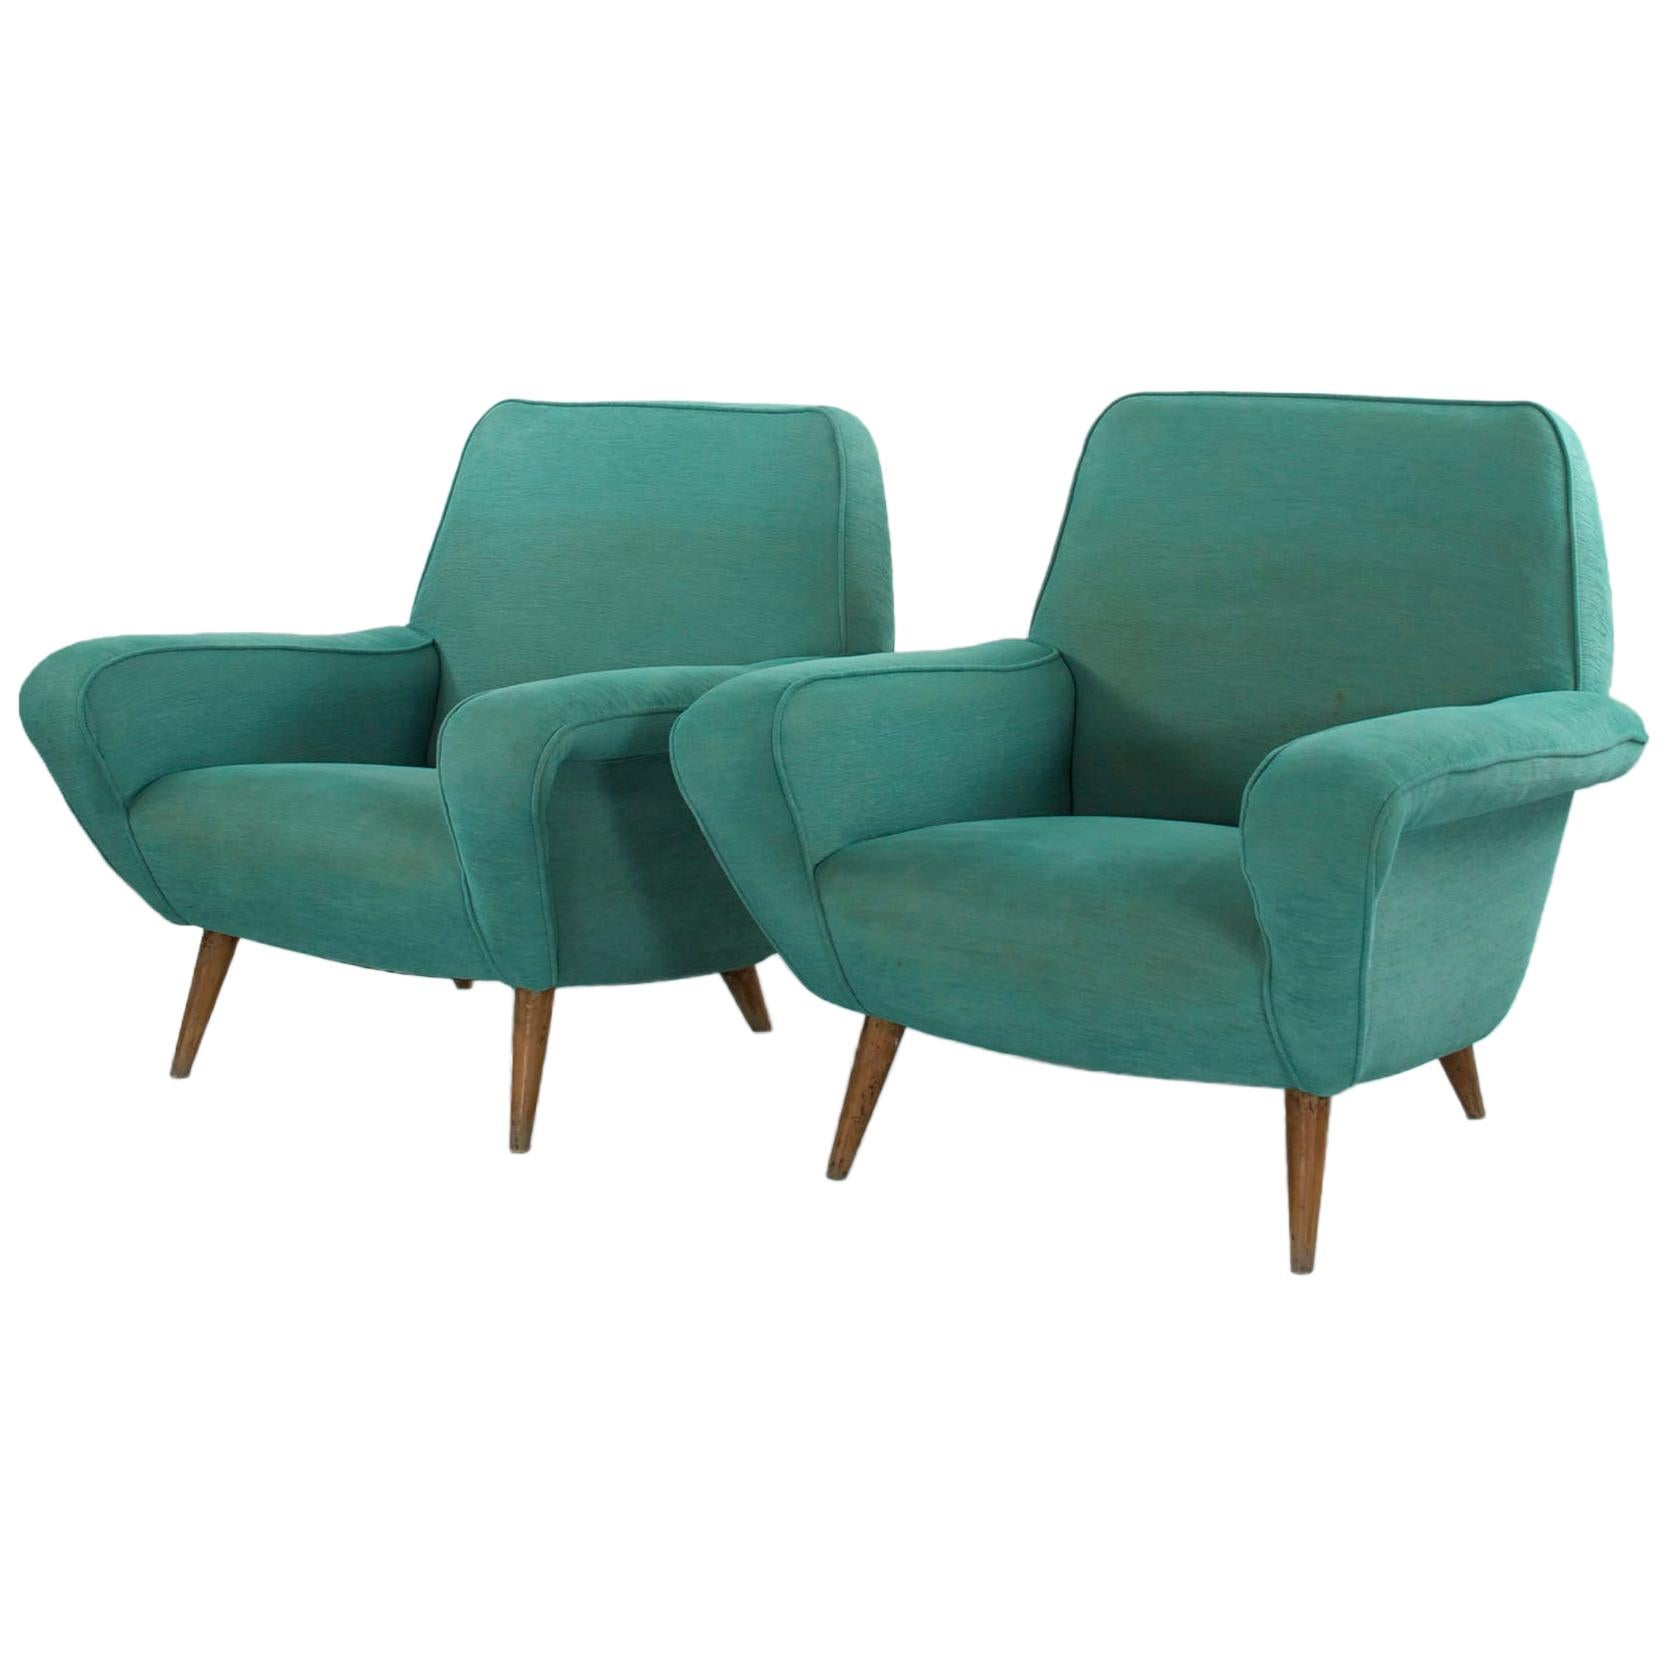 Set of 2 Gianfranco Frattini Chairs Modell 830, 1950s, Cassina, Italy